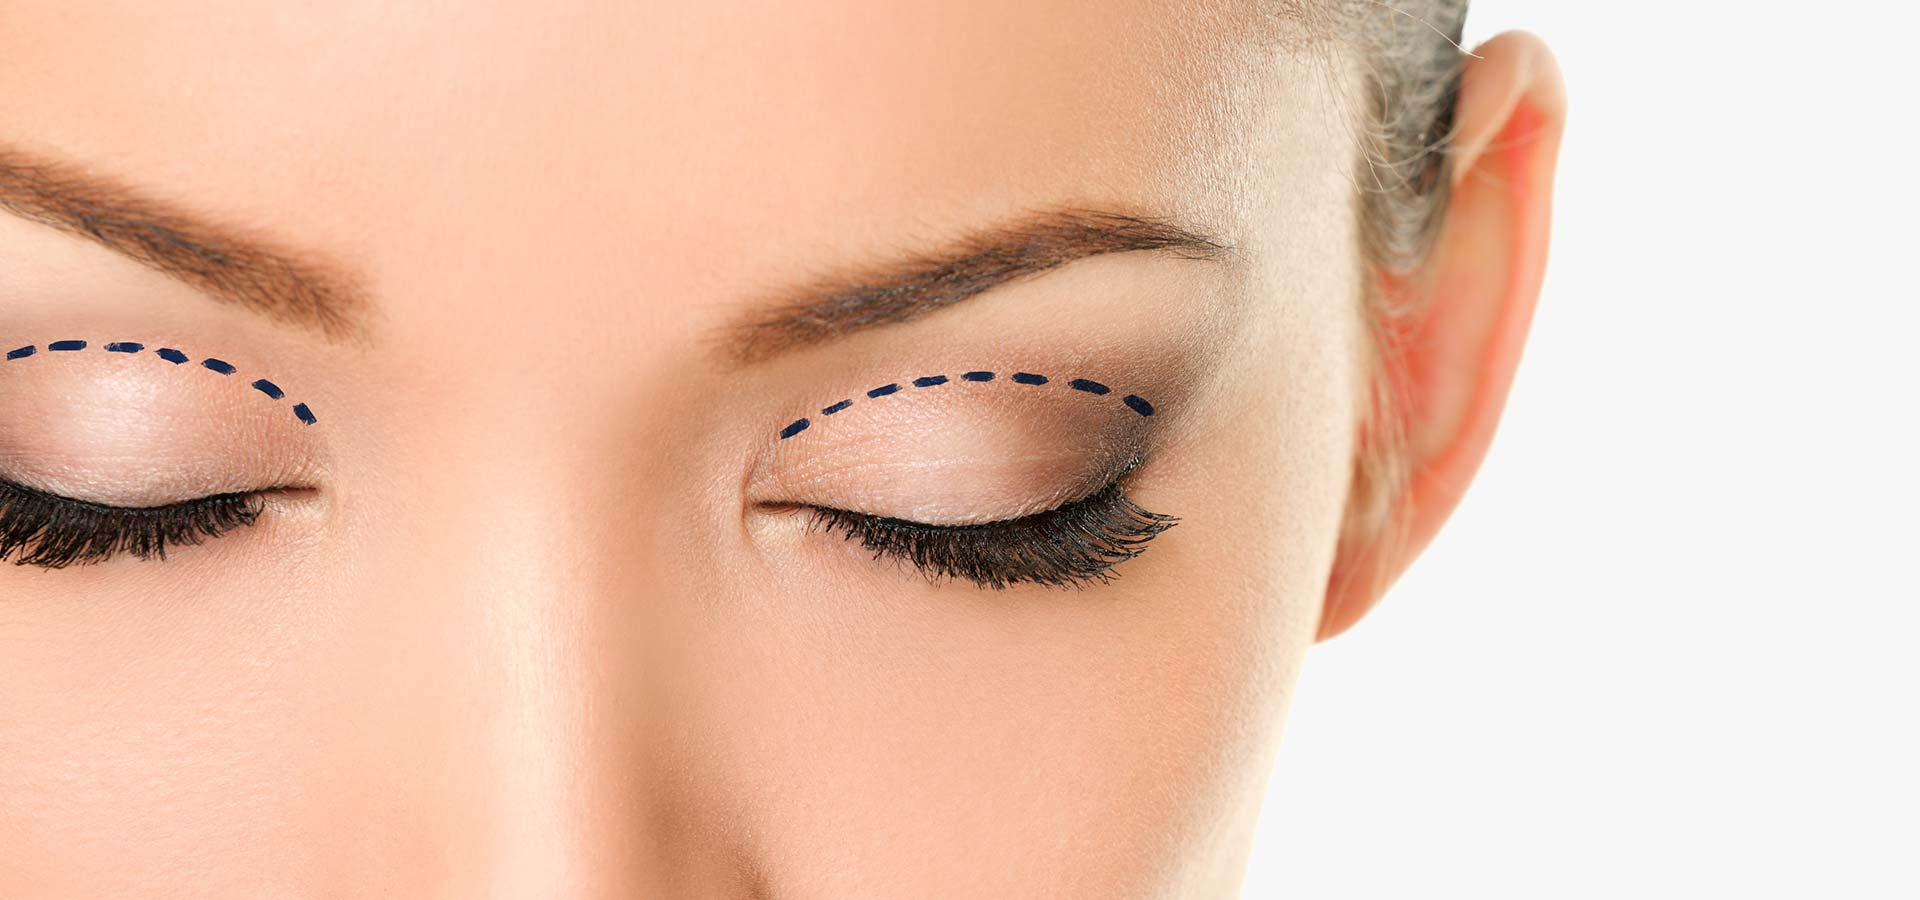 Blepharoplasty, Eyelid Lift Photo Gallery